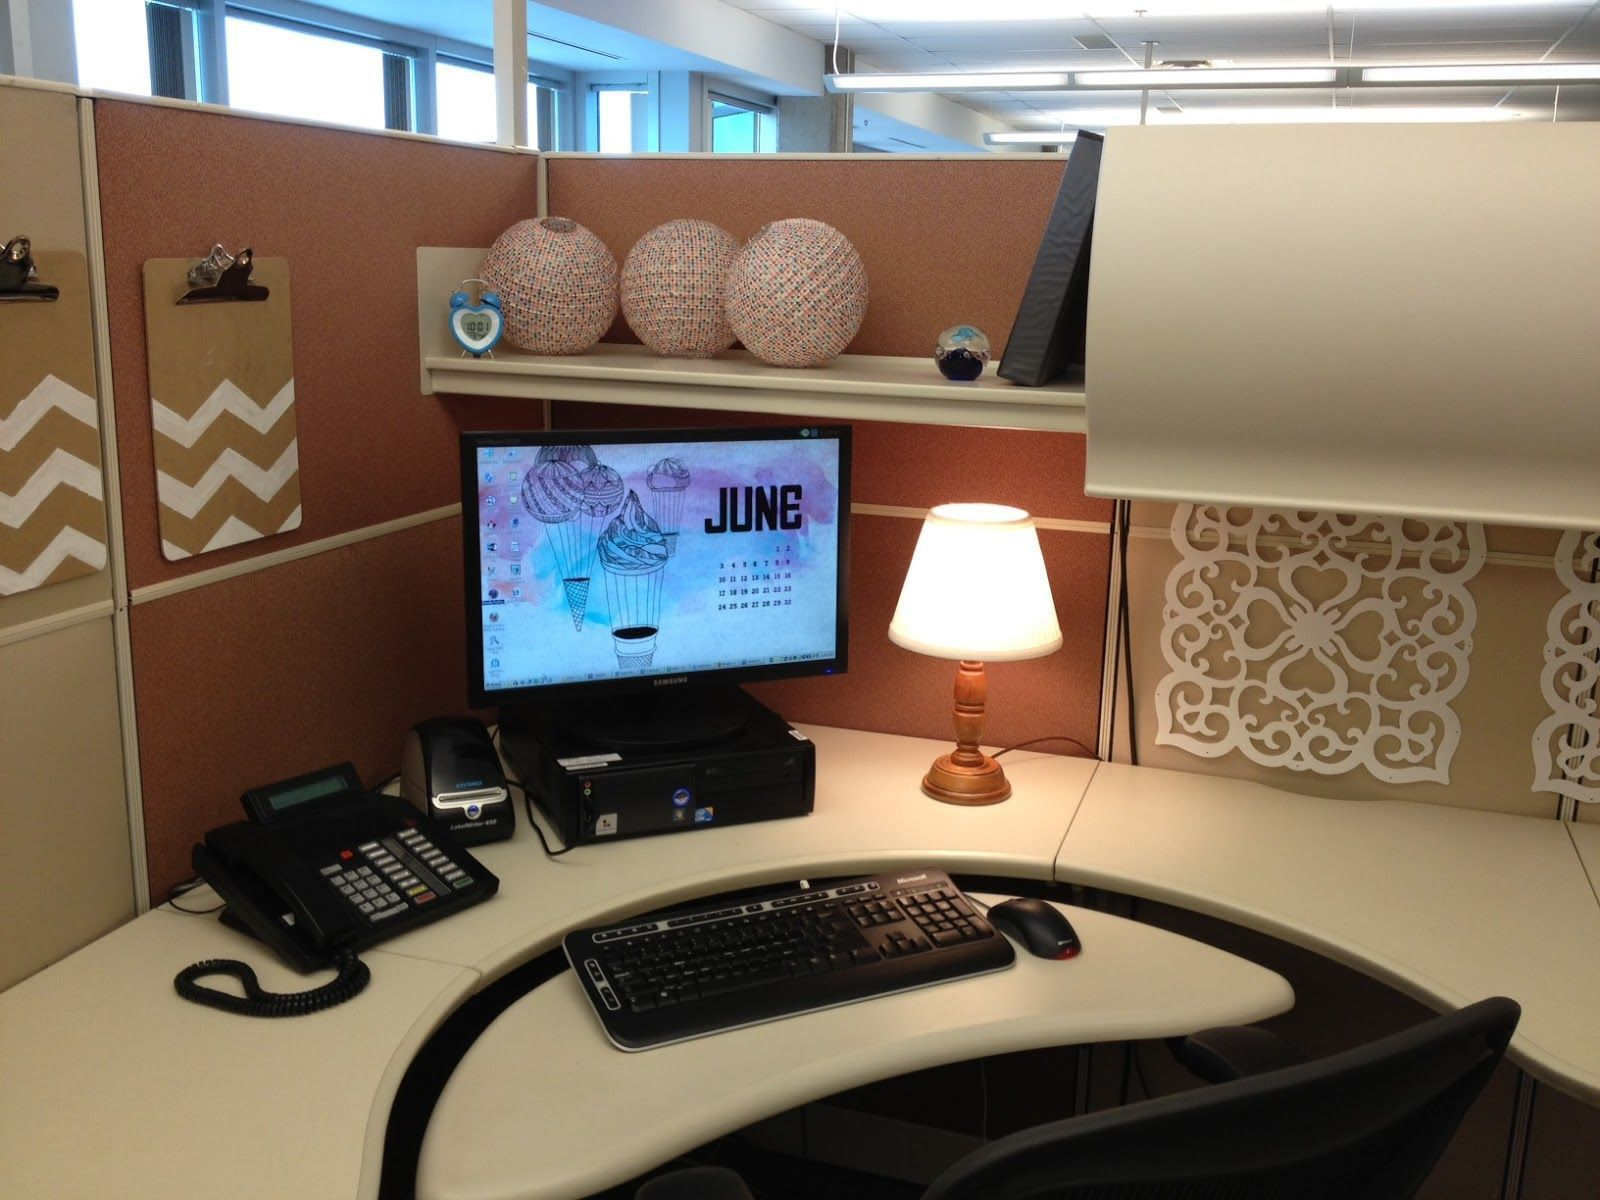 20 Cubicle Decor Ideas To Make Your Office Style Work As Hard As You Do Cubicle Decor Office Cubicle Makeover Work Cubicle